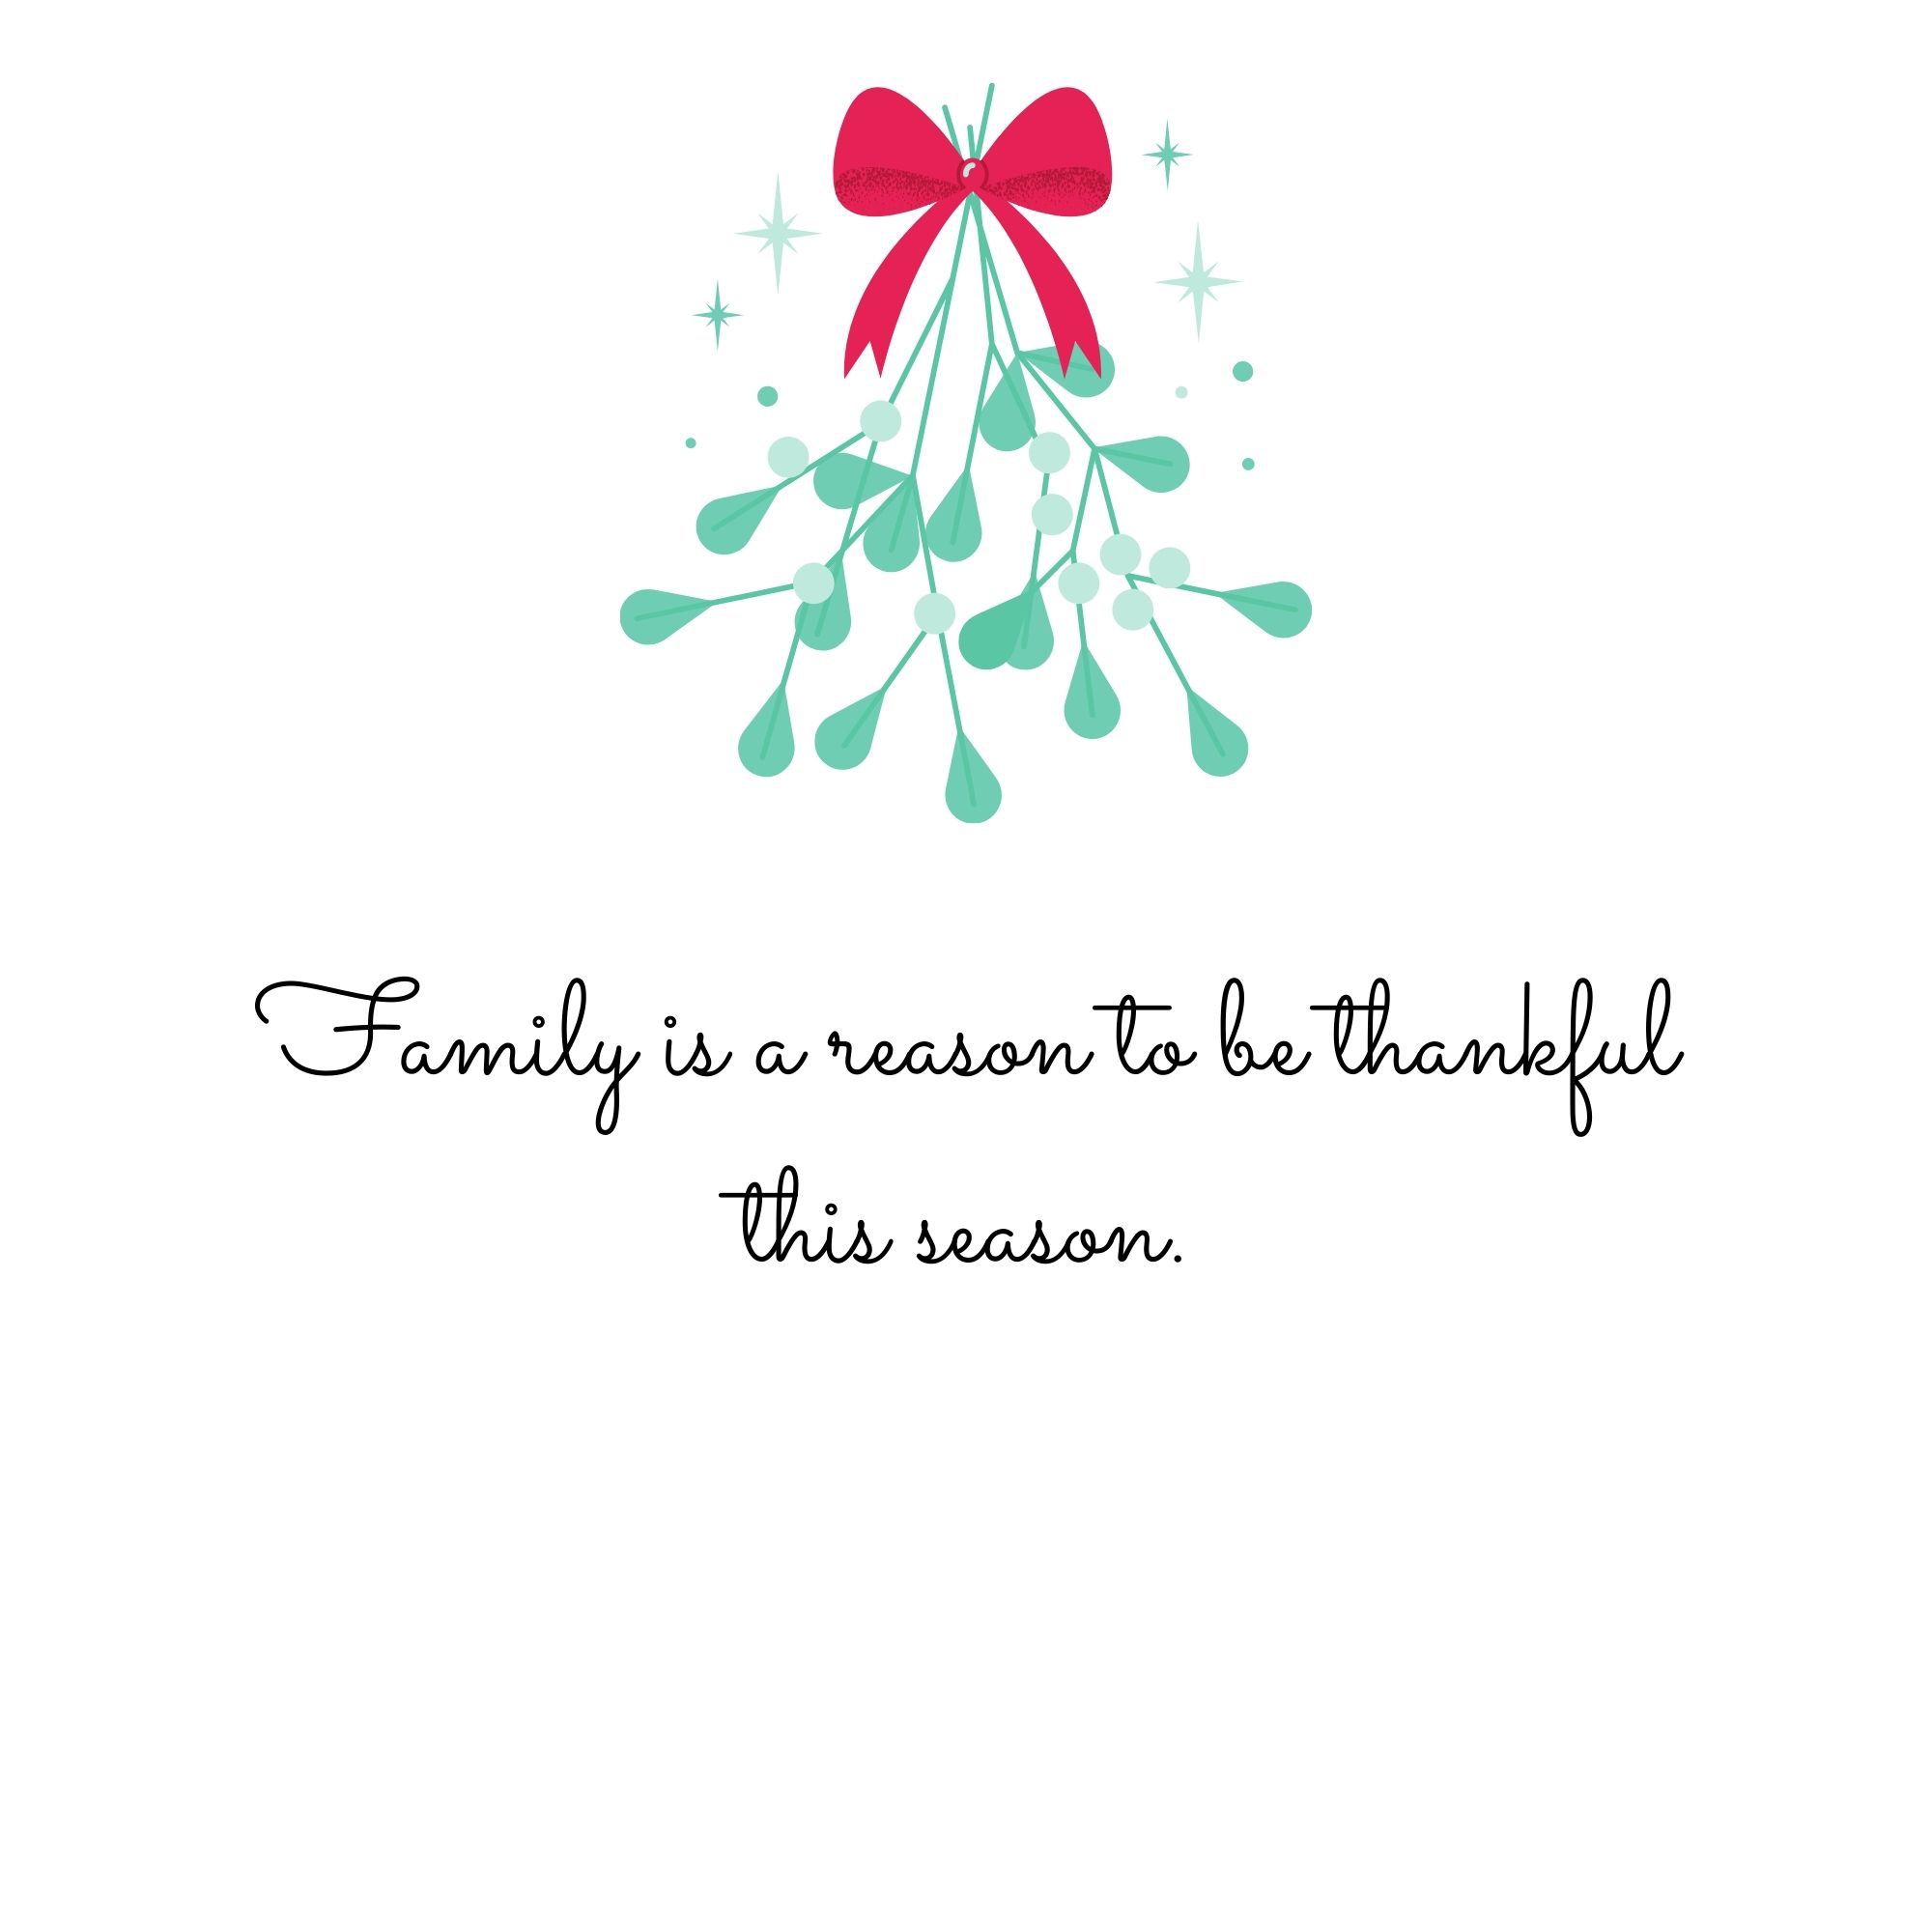 Family is a reason to be thankful this season.